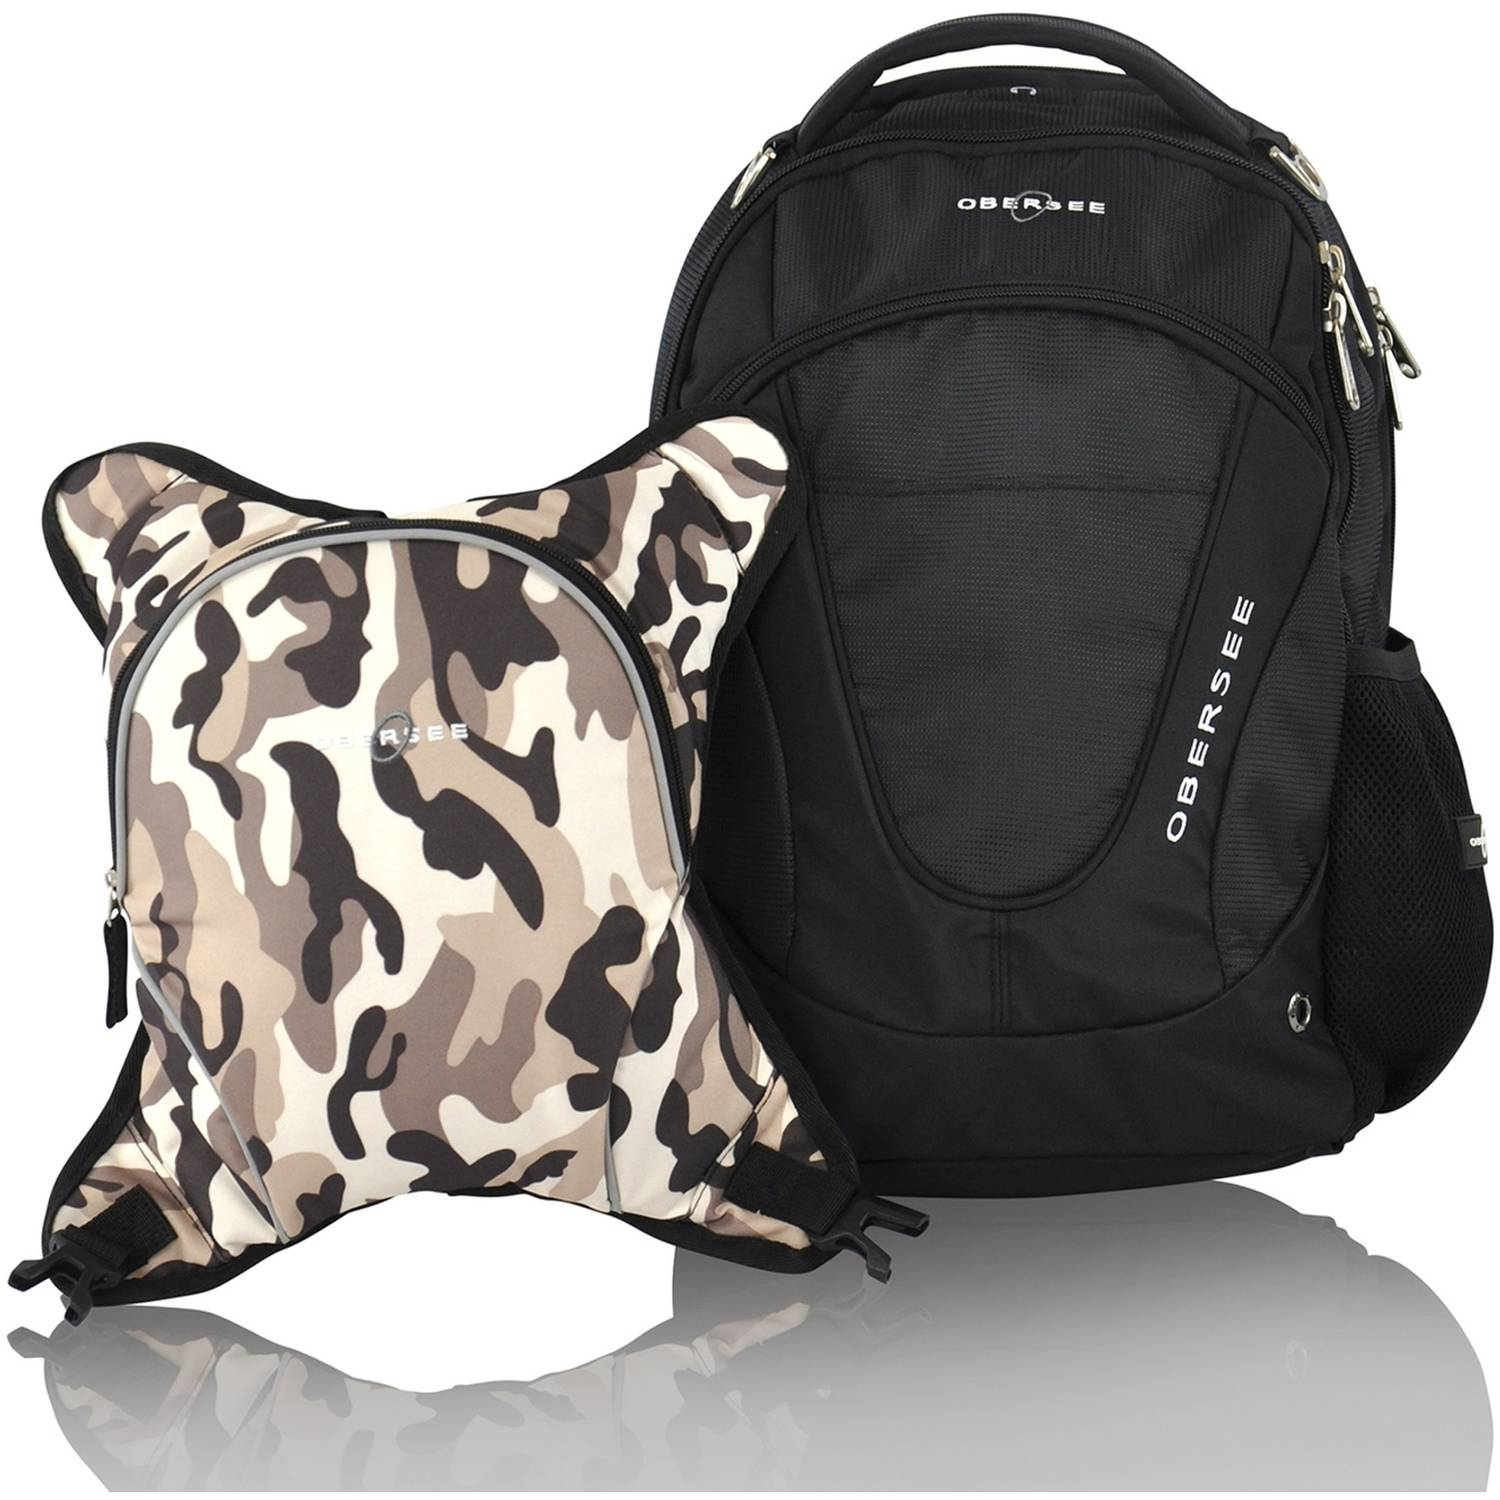 Obersee Oslo Diaper Bag Backpack and Cooler, Black Camo by Obersee